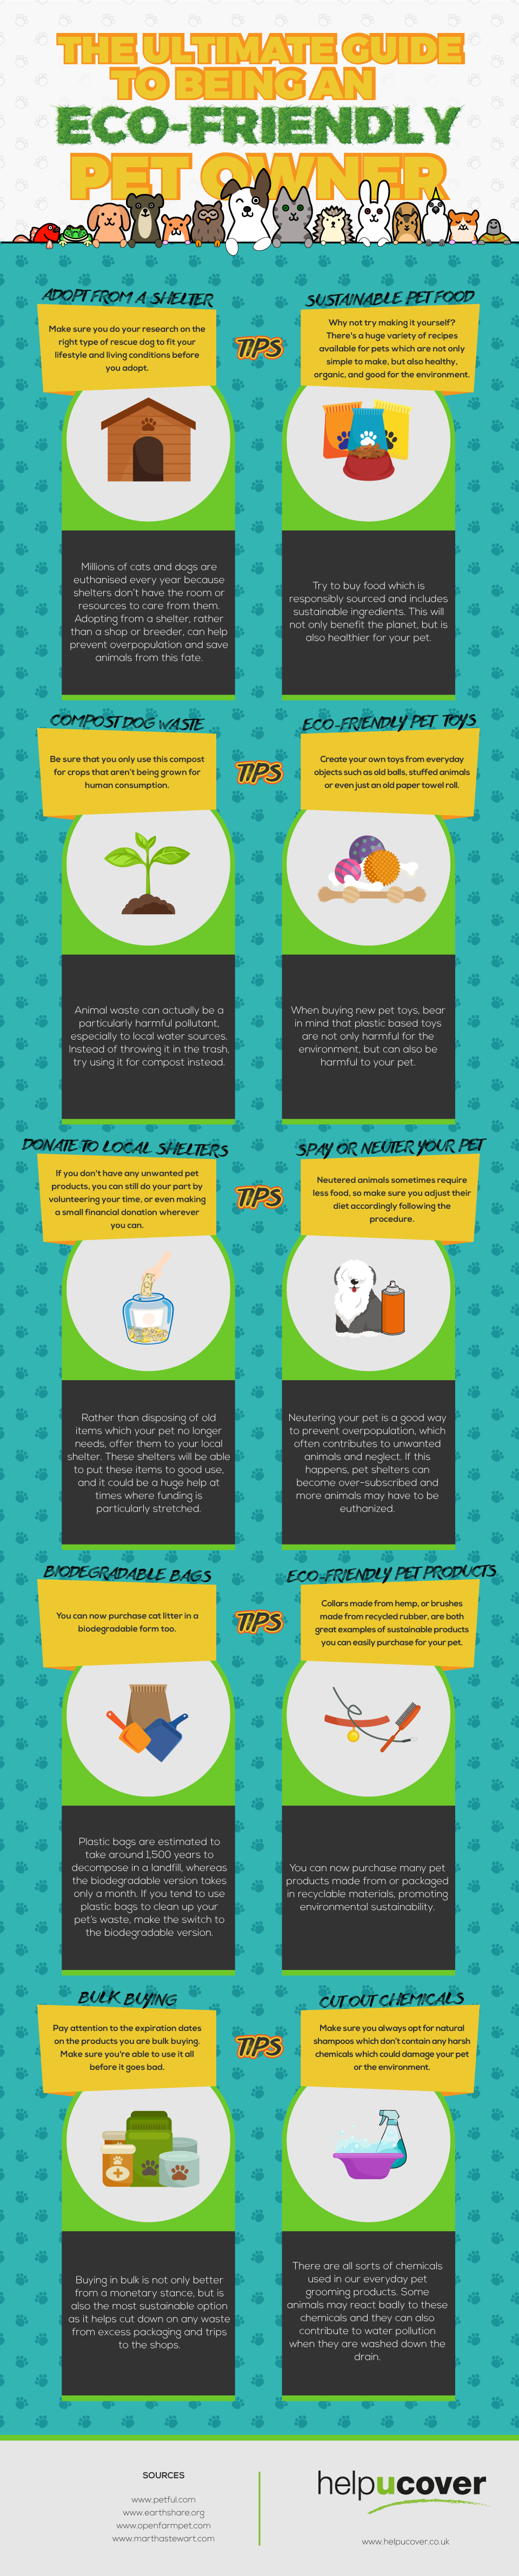 How To Own A Pet And Still Be Eco-friendly - Infographic